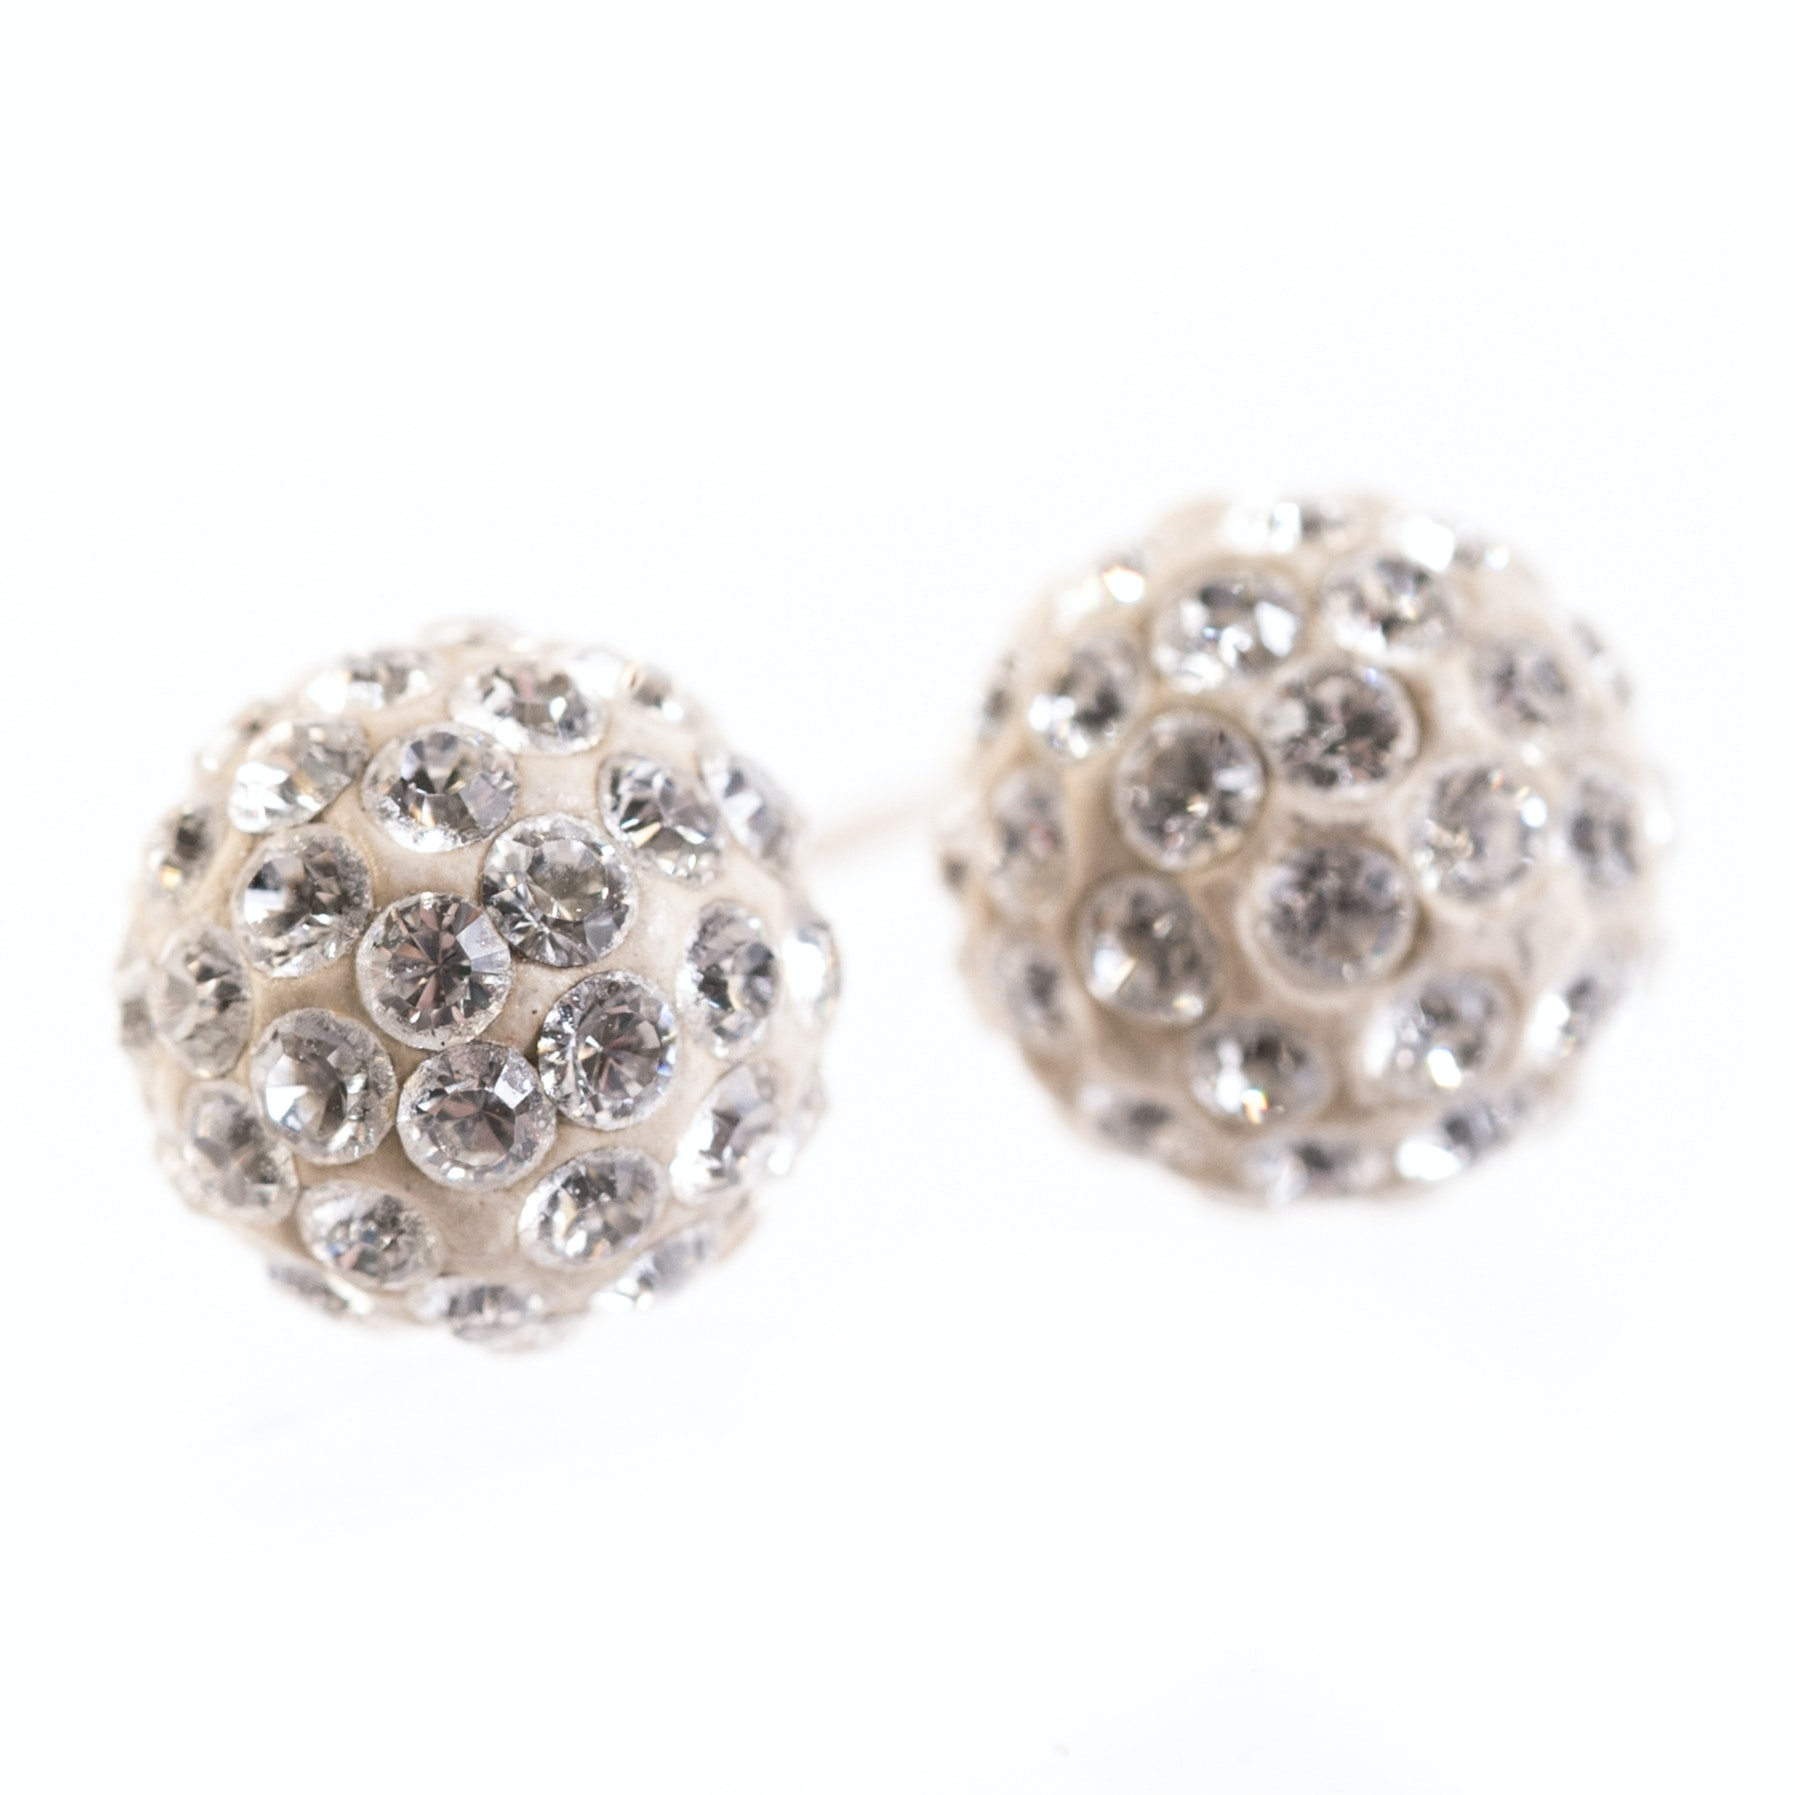 14K Yellow Gold and Crystal Ball Stud Earrings